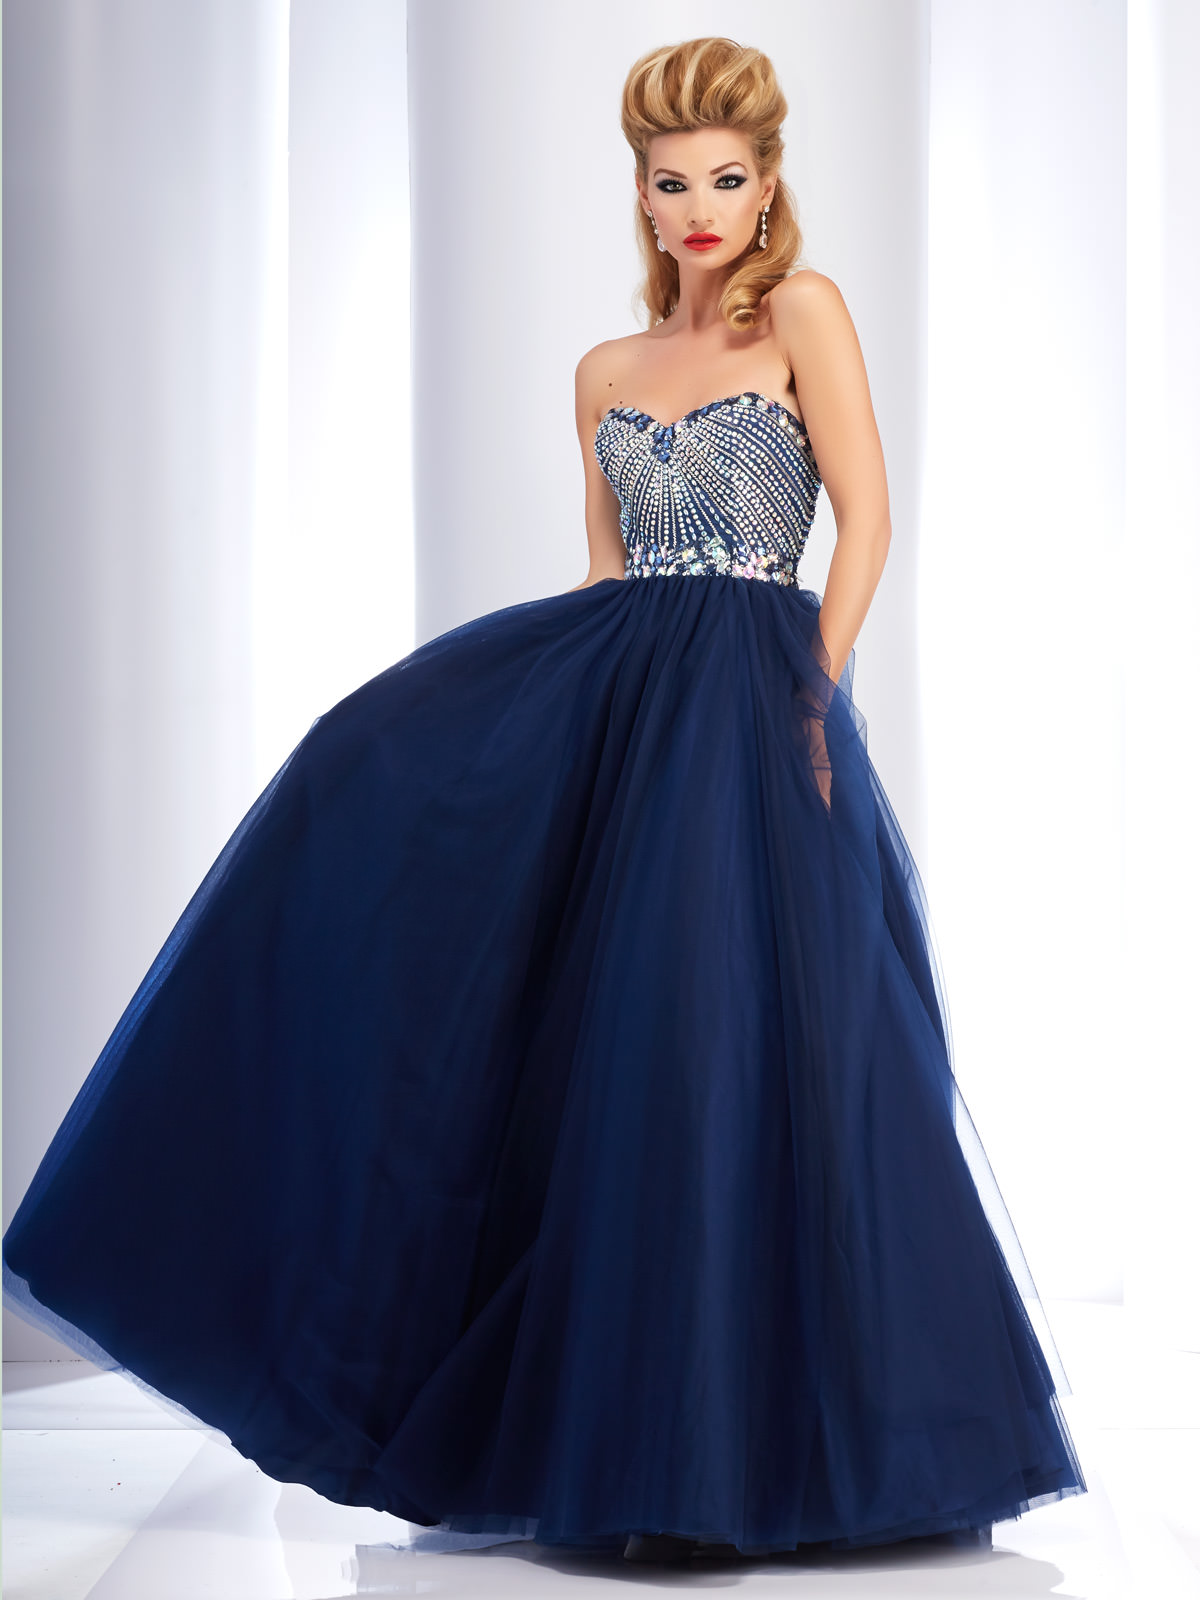 Perfect Prom Dresses At The Mall Image Collection - Wedding Dress ...